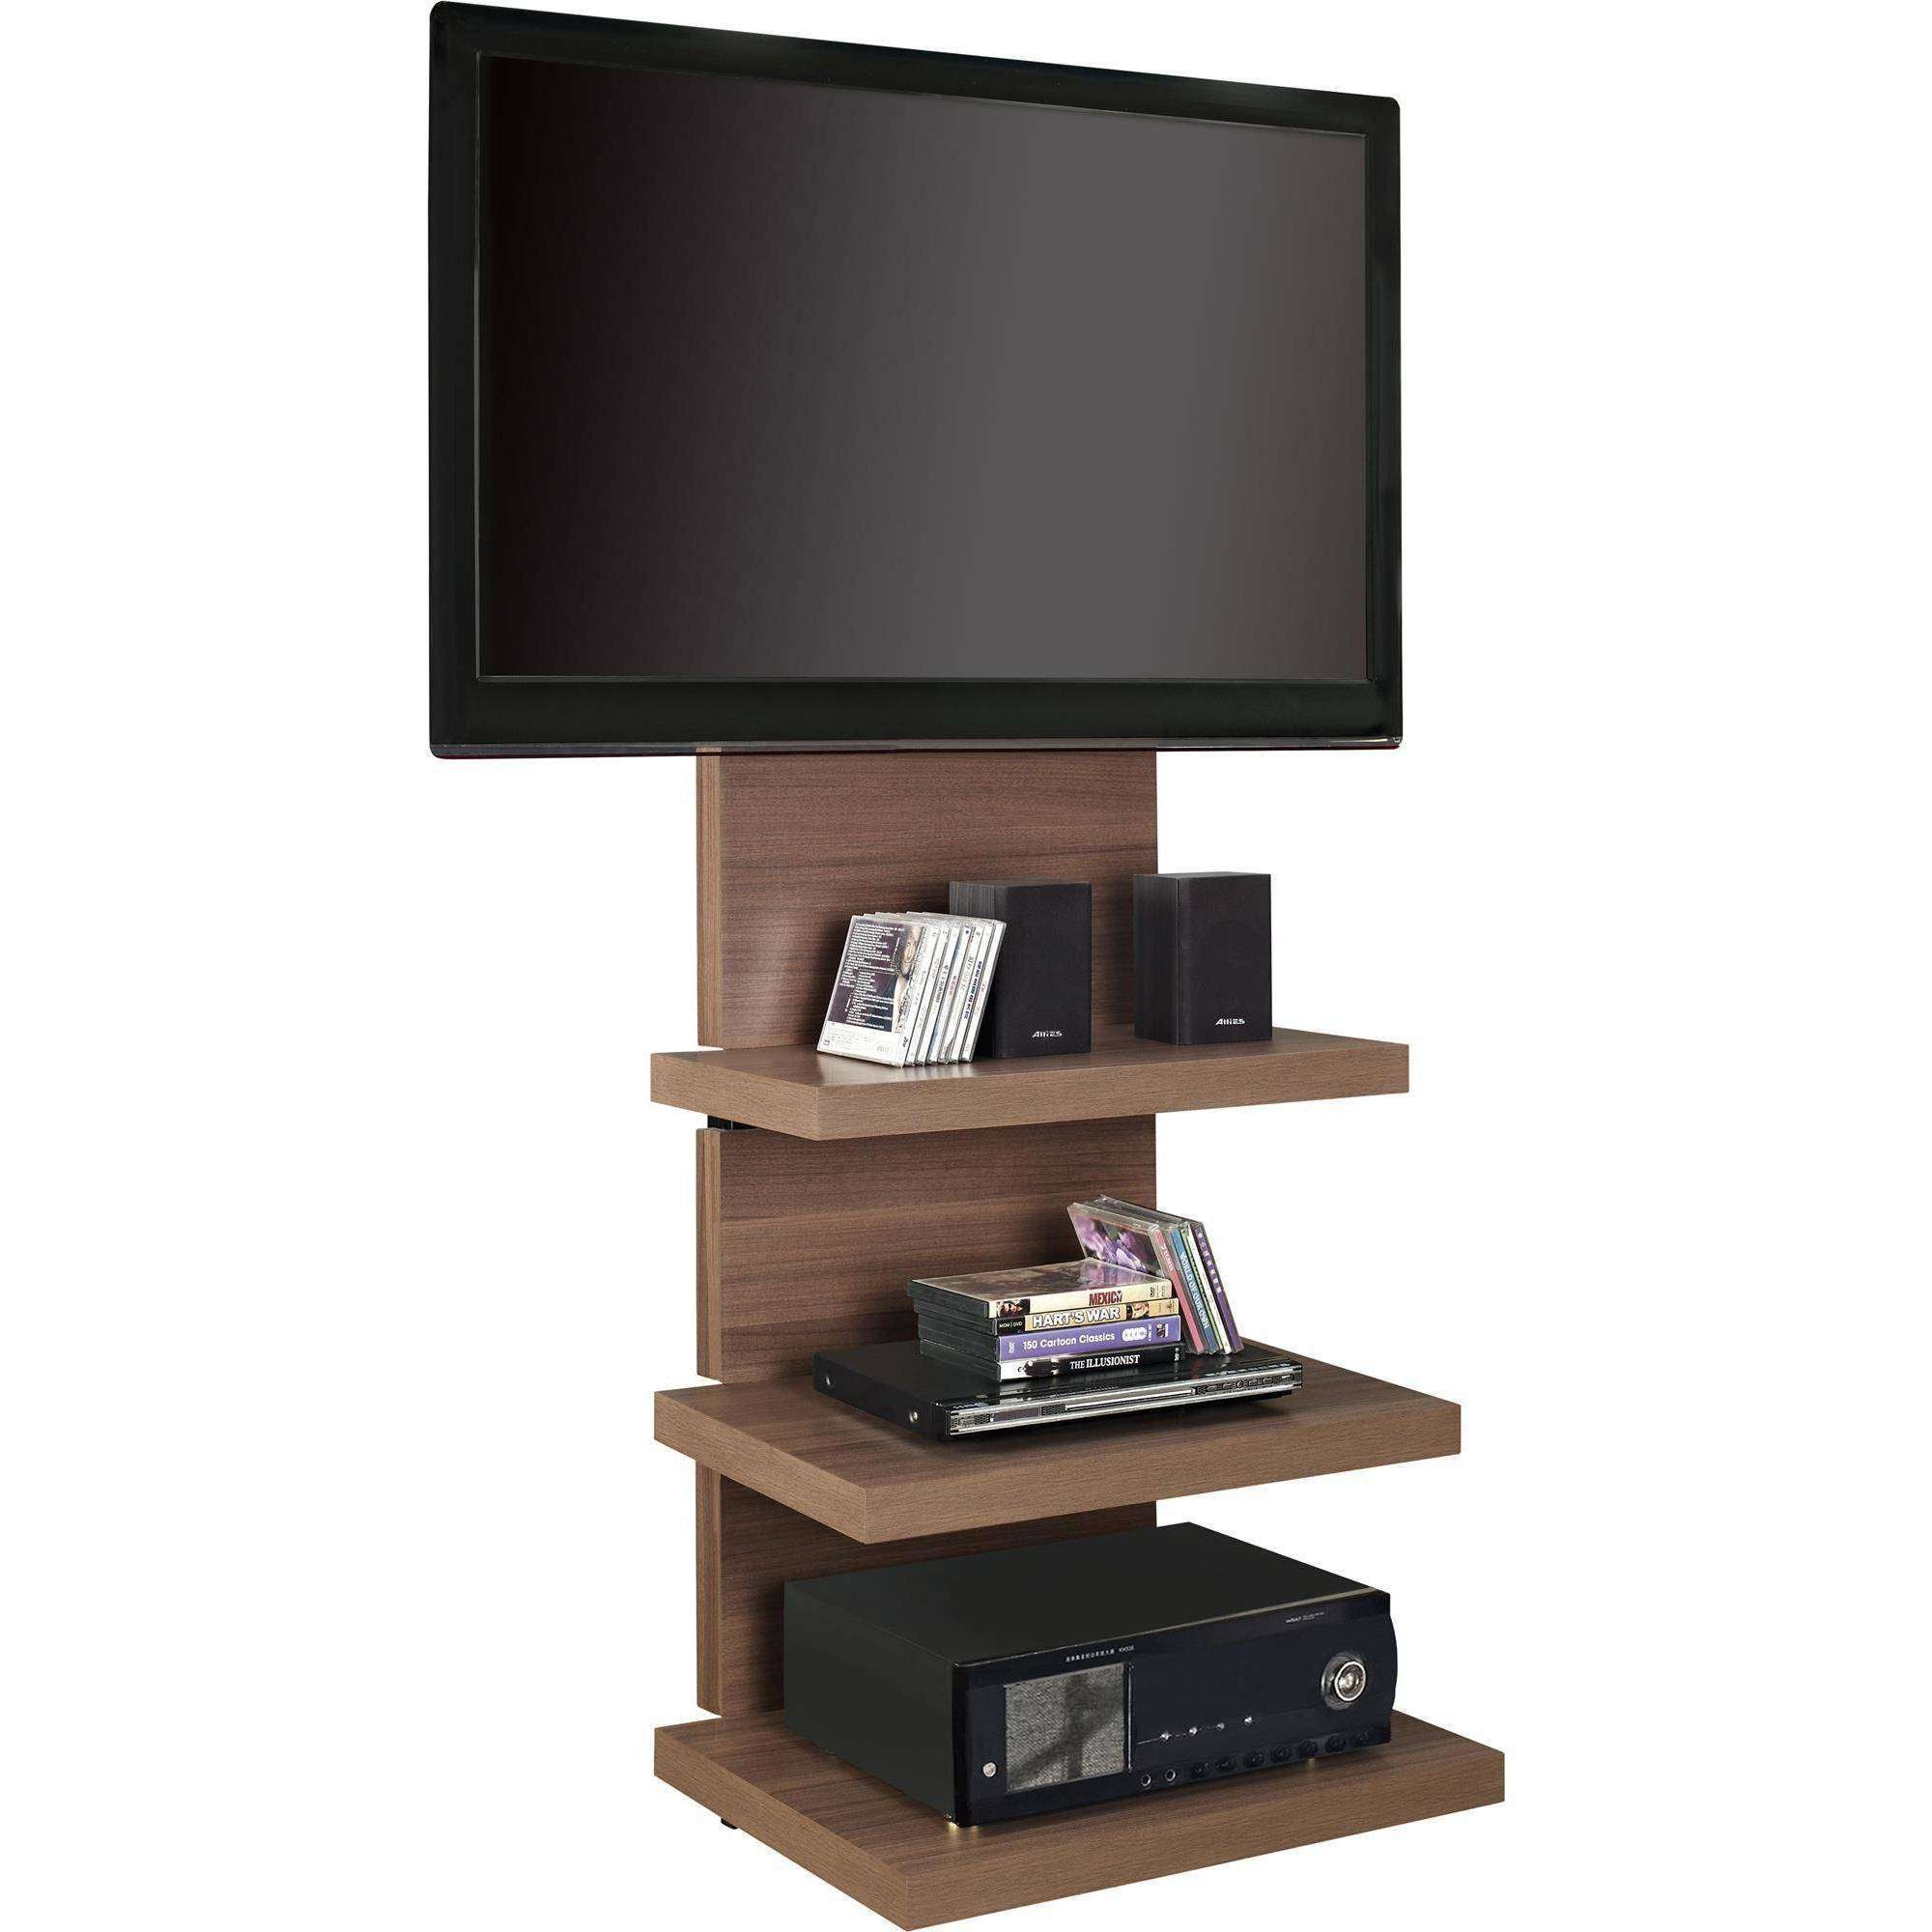 Slim Line Tv Stands (View 14 of 20)